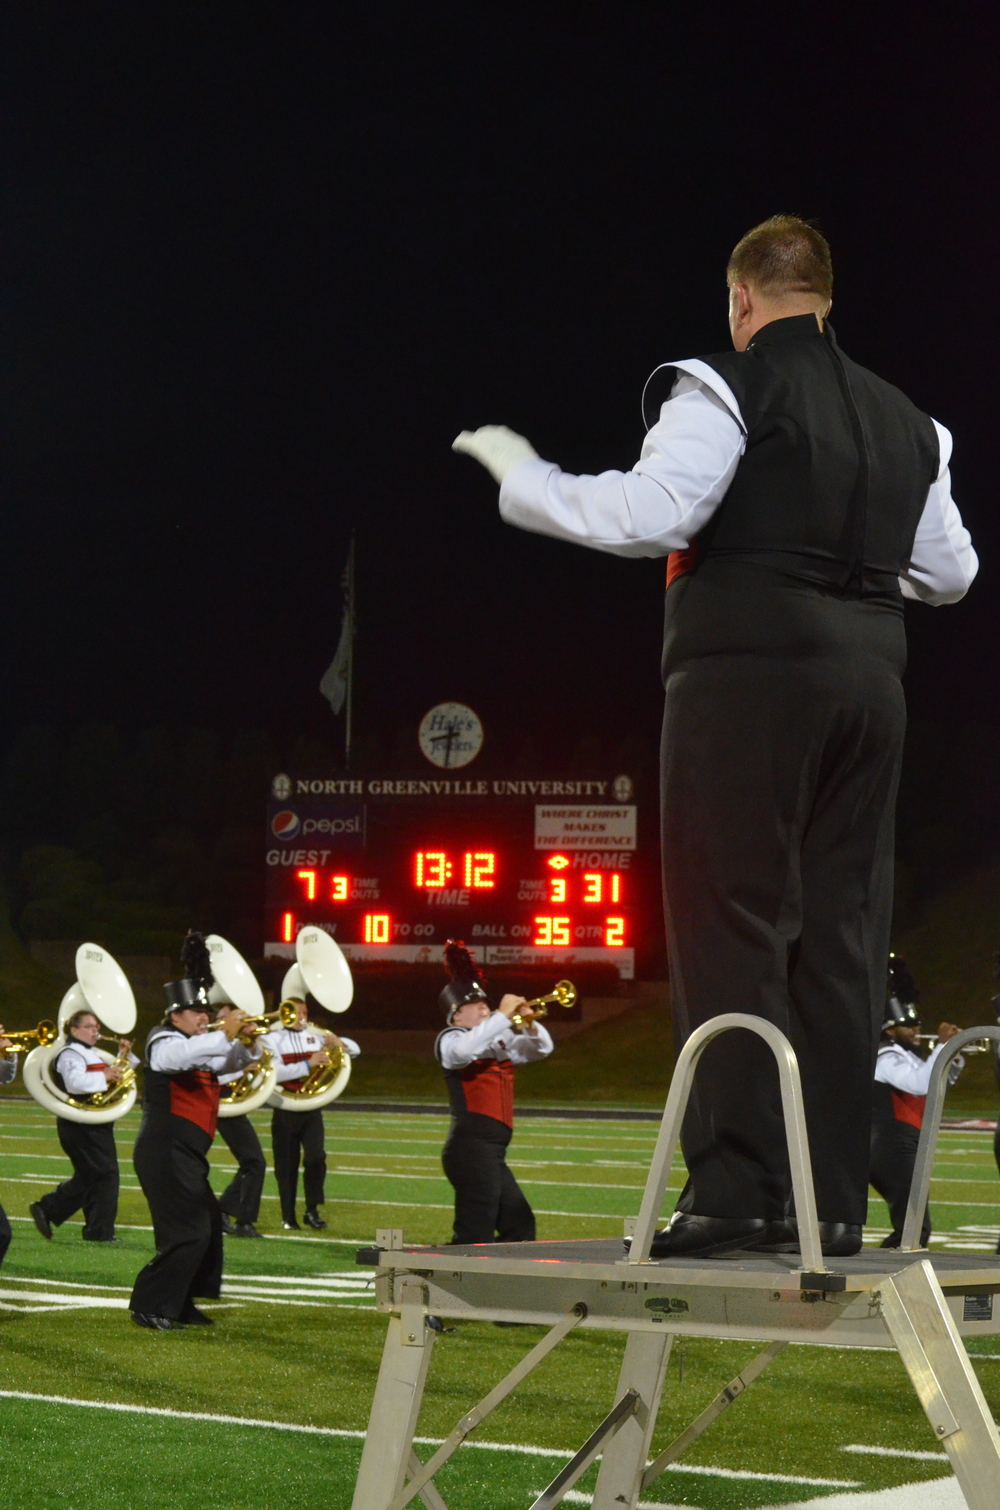 The Drum Major leads the band in playing